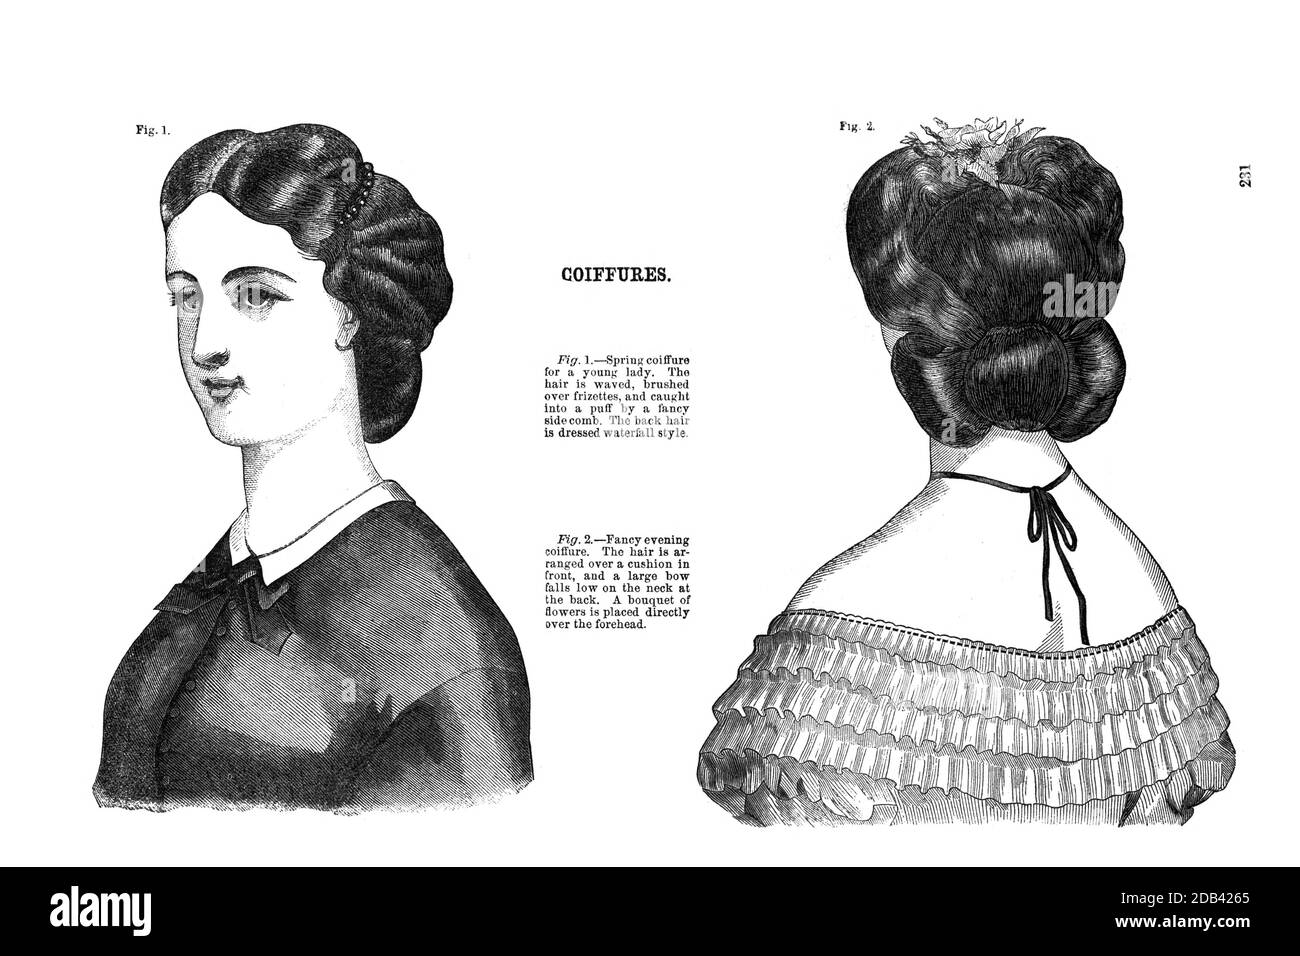 Coiffures - woman's hairstyling from Godey's Lady's Book and Magazine, Marc, 1864, Volume LXIX, (Volume 69), Philadelphia, Louis A. Godey, Sarah Josepha Hale, Stock Photo